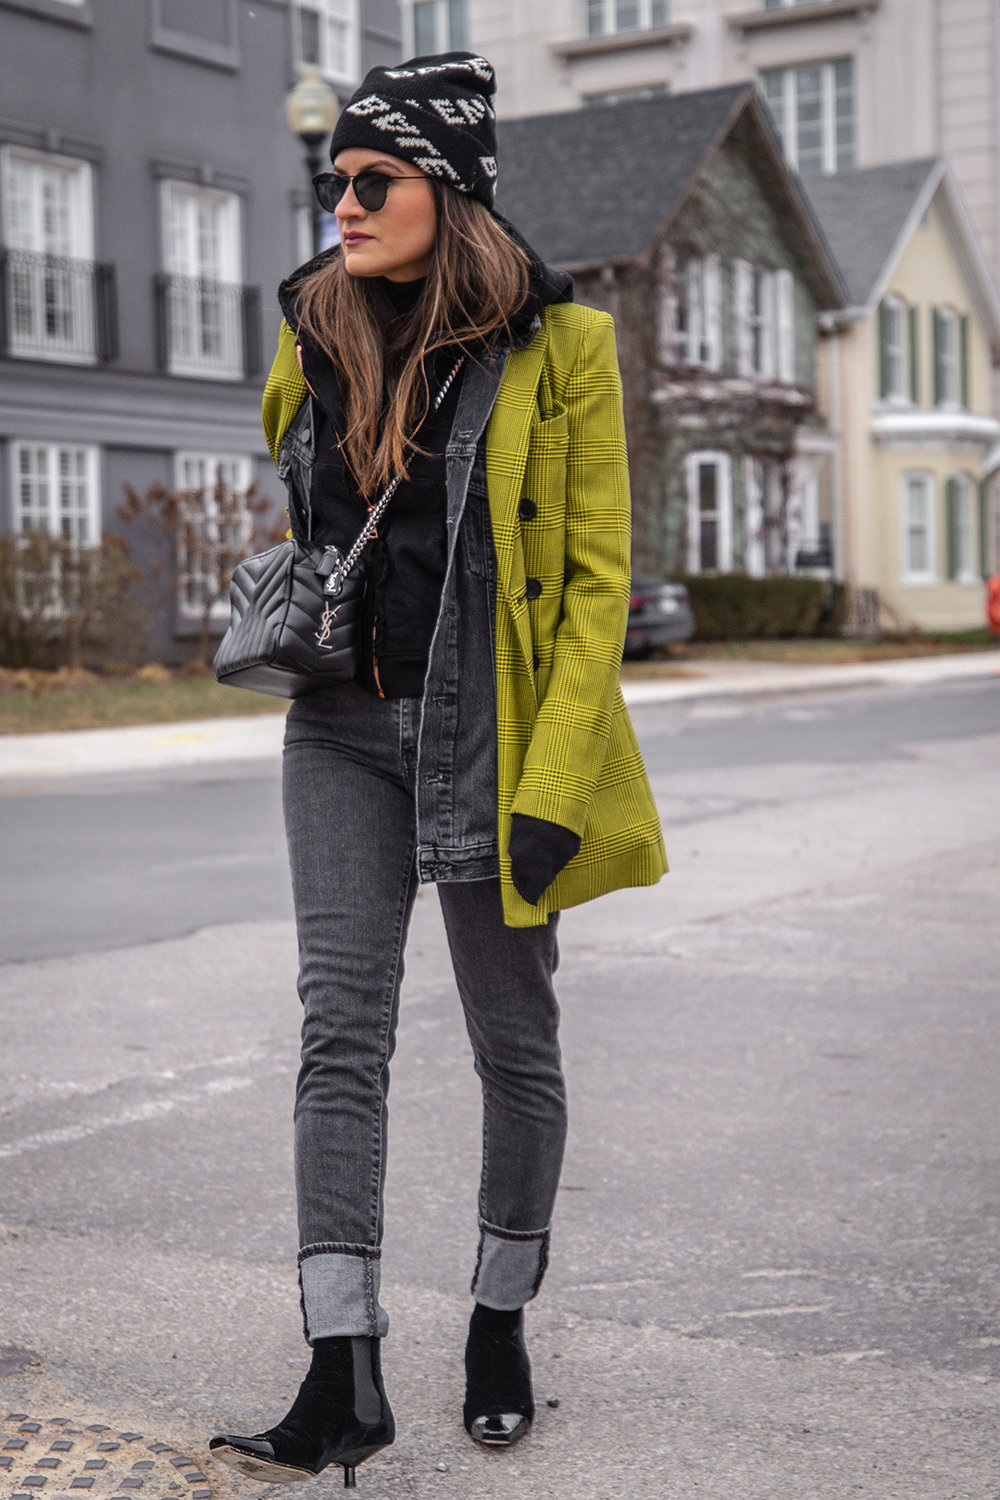 Nathalie Martin, Robert Rodriguez yellow plaid houndstooth blazer, Balenciaga logo beanie hat, Loewe velvet patent leather boots, grey jeans, Alexander Wang denim vest, Frank & Eileen hoodie, Saint Laurent LouLou bag, streetstyle woahstyle.com_6139.jpg